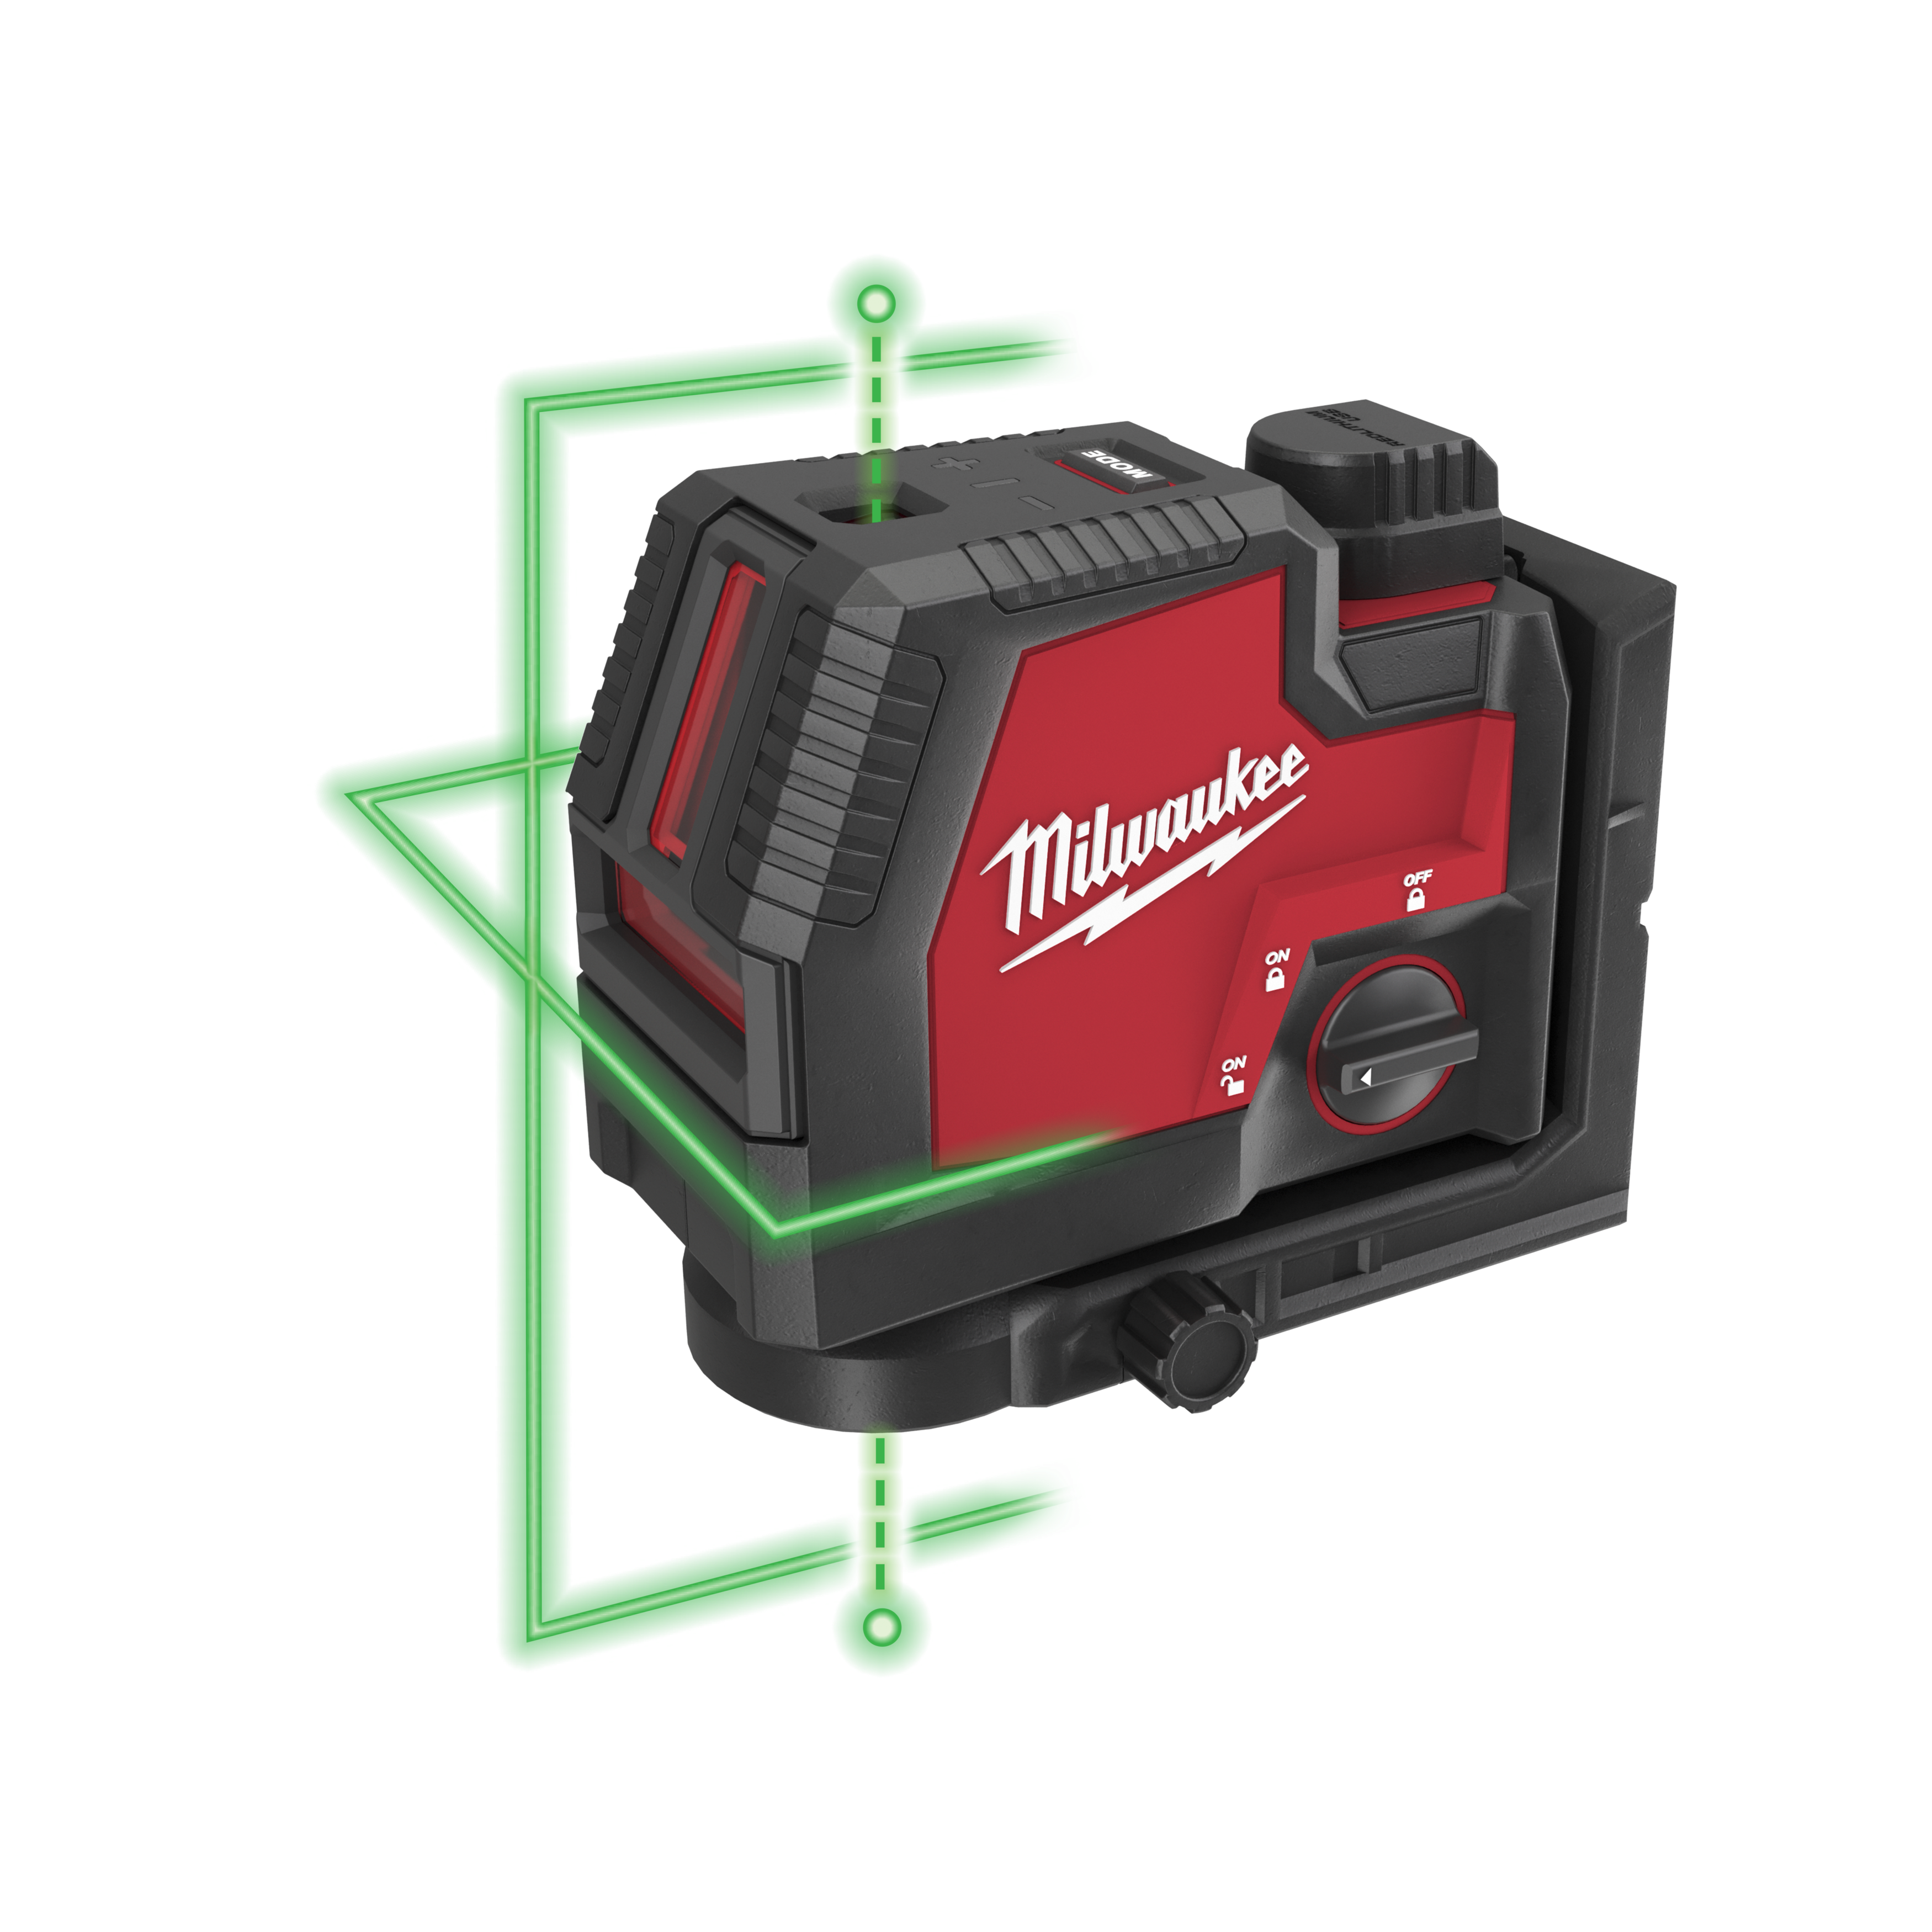 USB rechargeable green cross line laser with plumb points